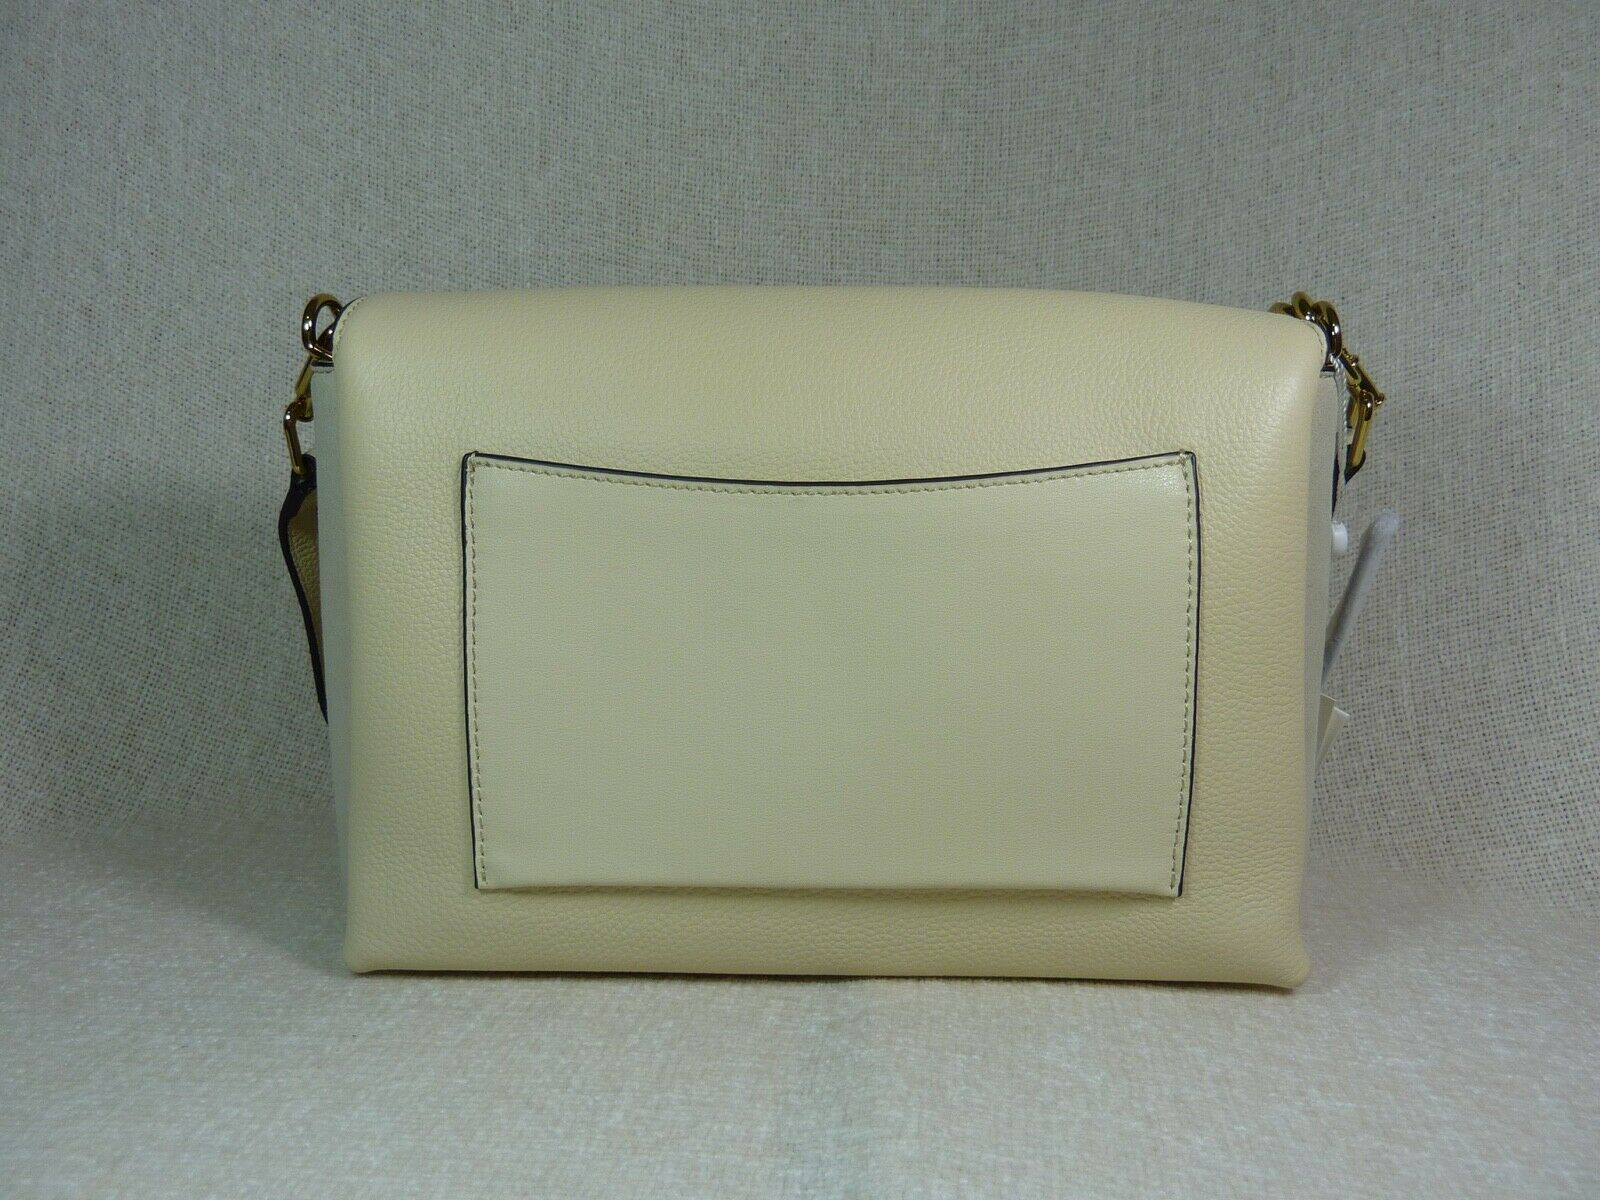 NWT Tory Burch New Cream KIRA Mixed-material Double-strap Shoulder Bag $528 image 4